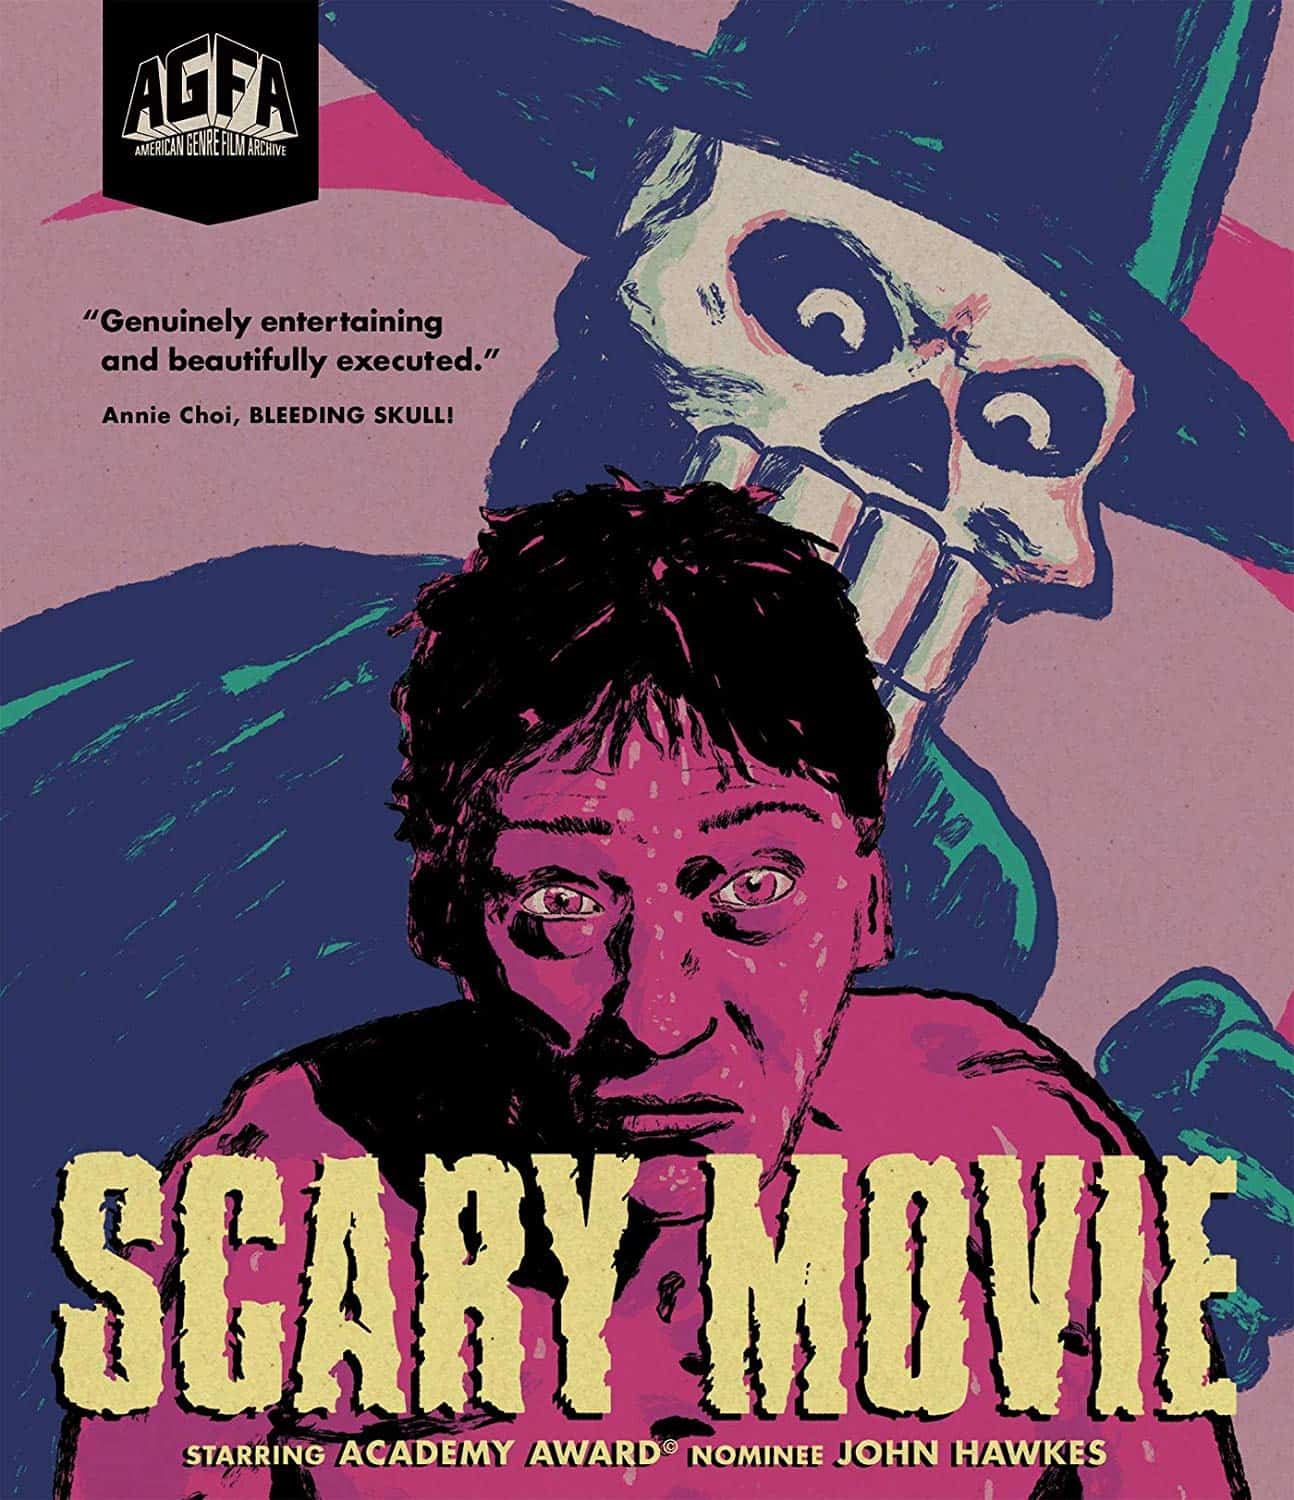 scary movie blu - SCARY MOVIE Blu-ray Review - No, Not That One